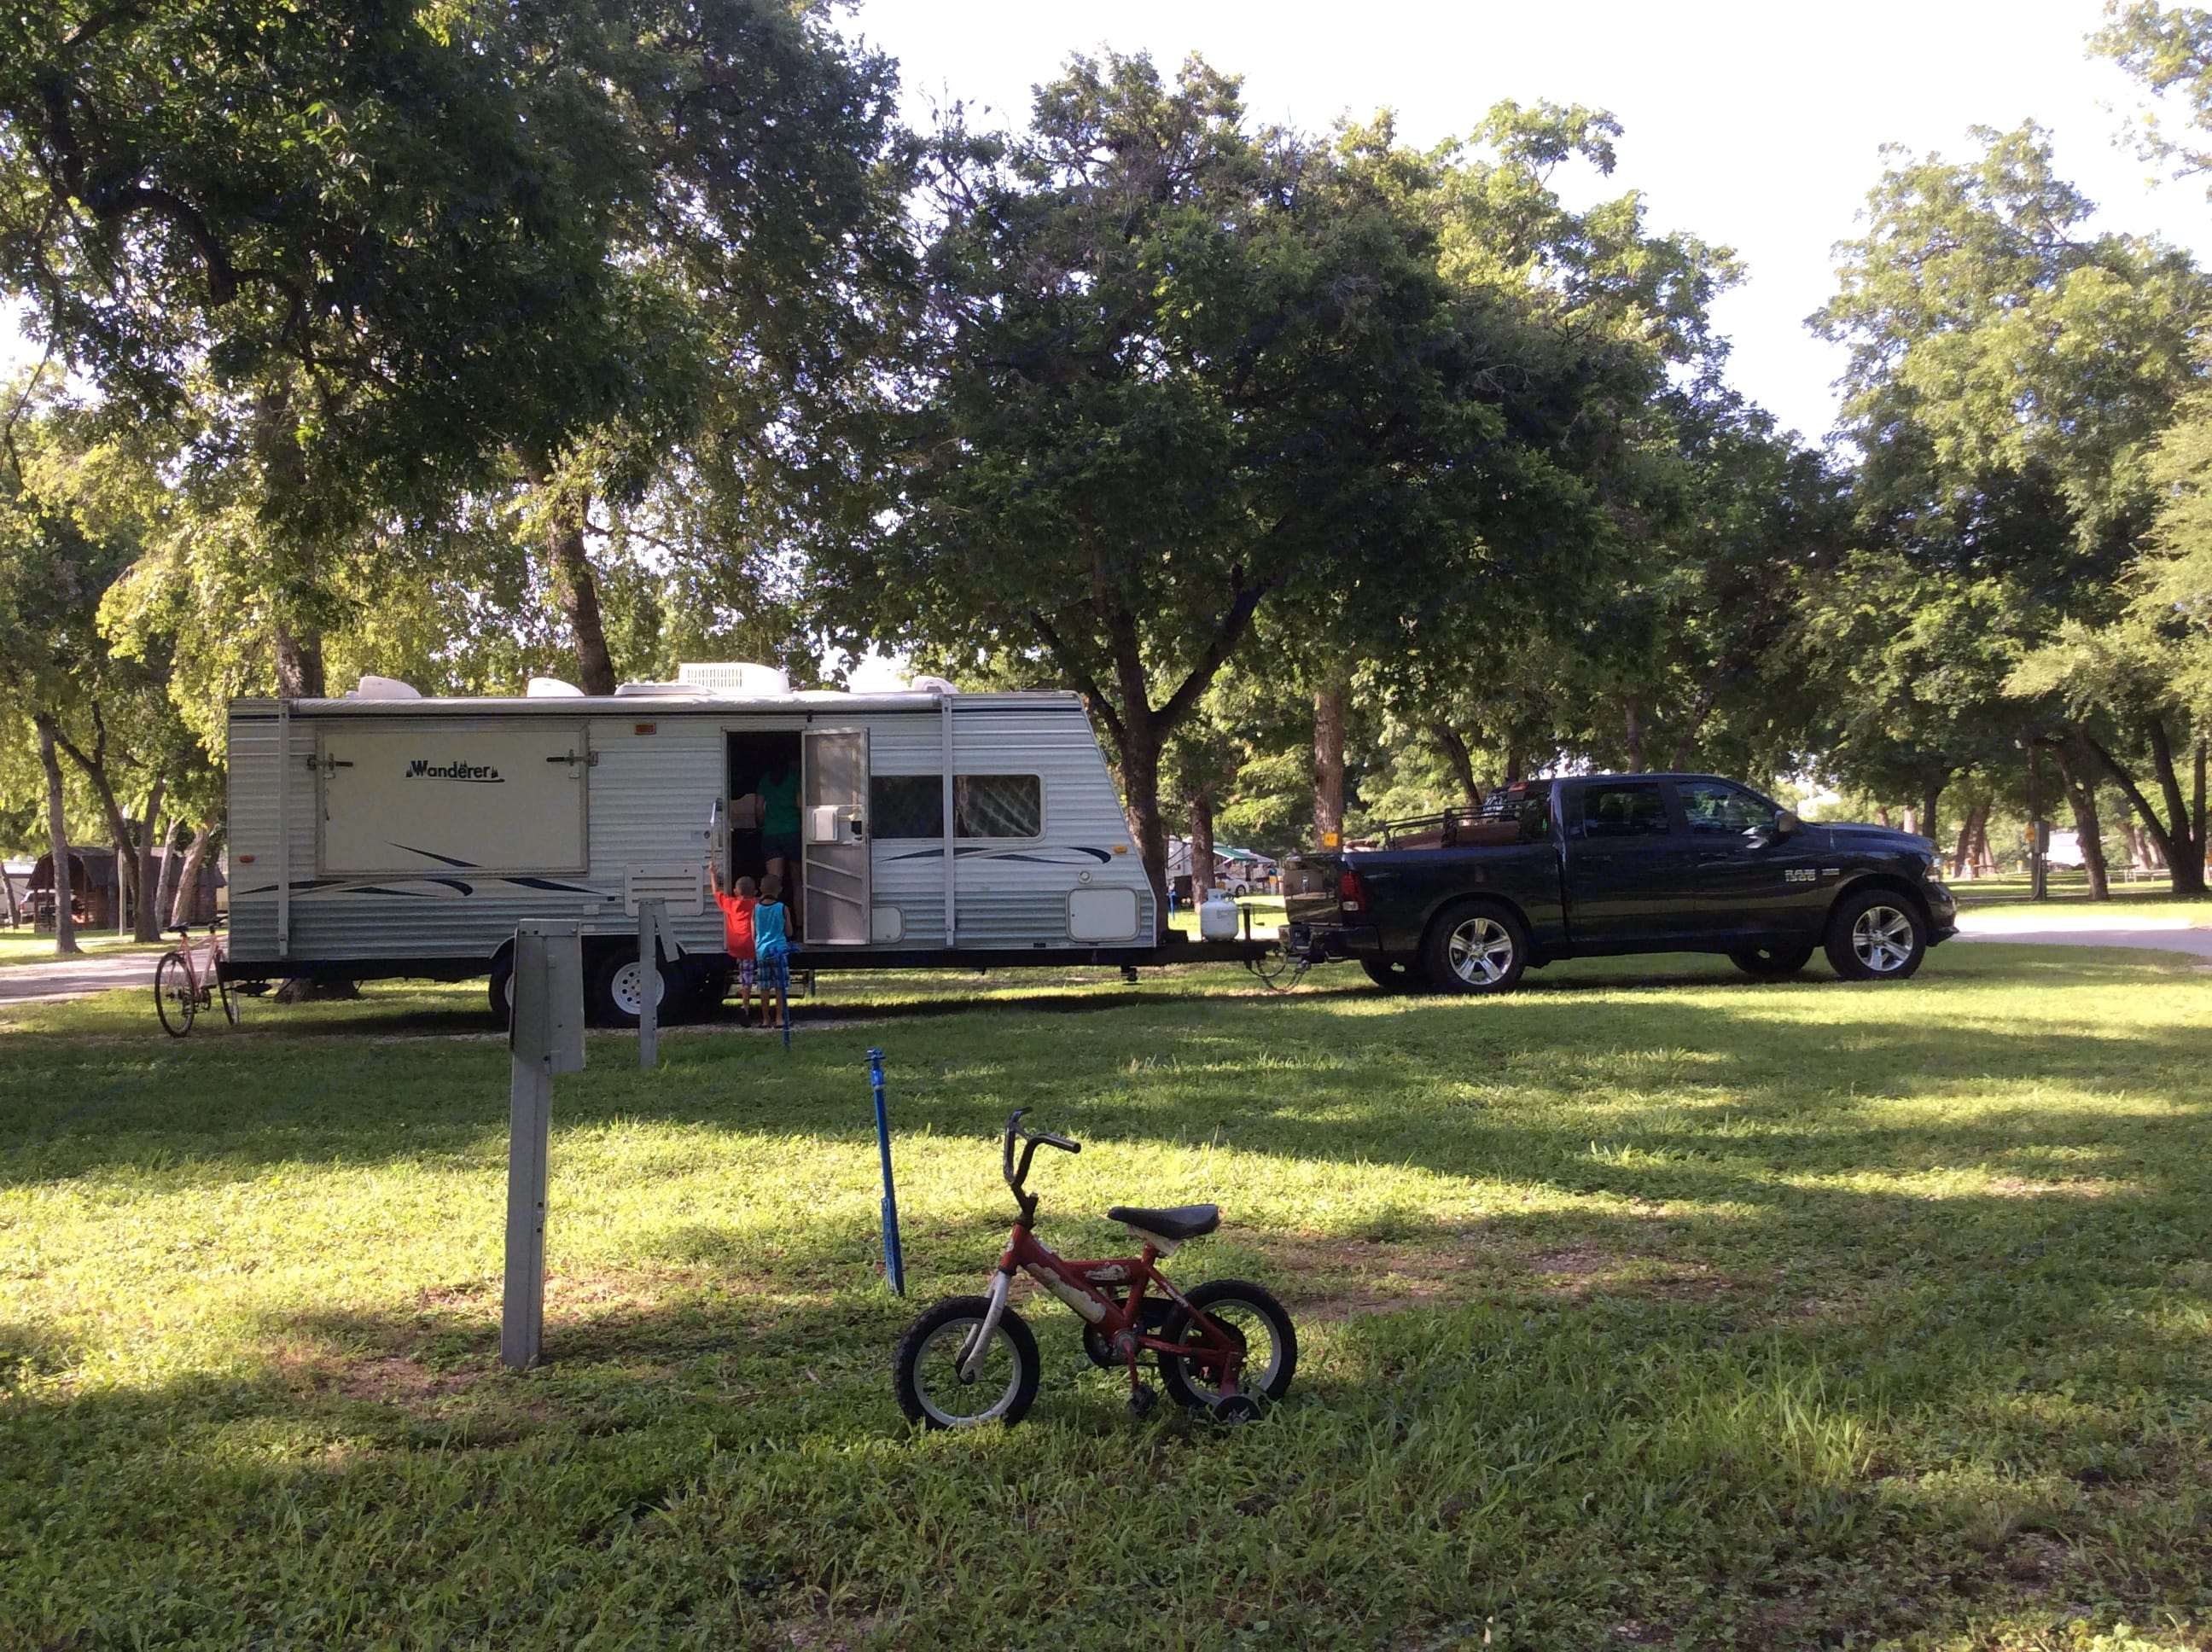 Being towed. Weight 4500. . Thor Motor Coach Wanderer 2004